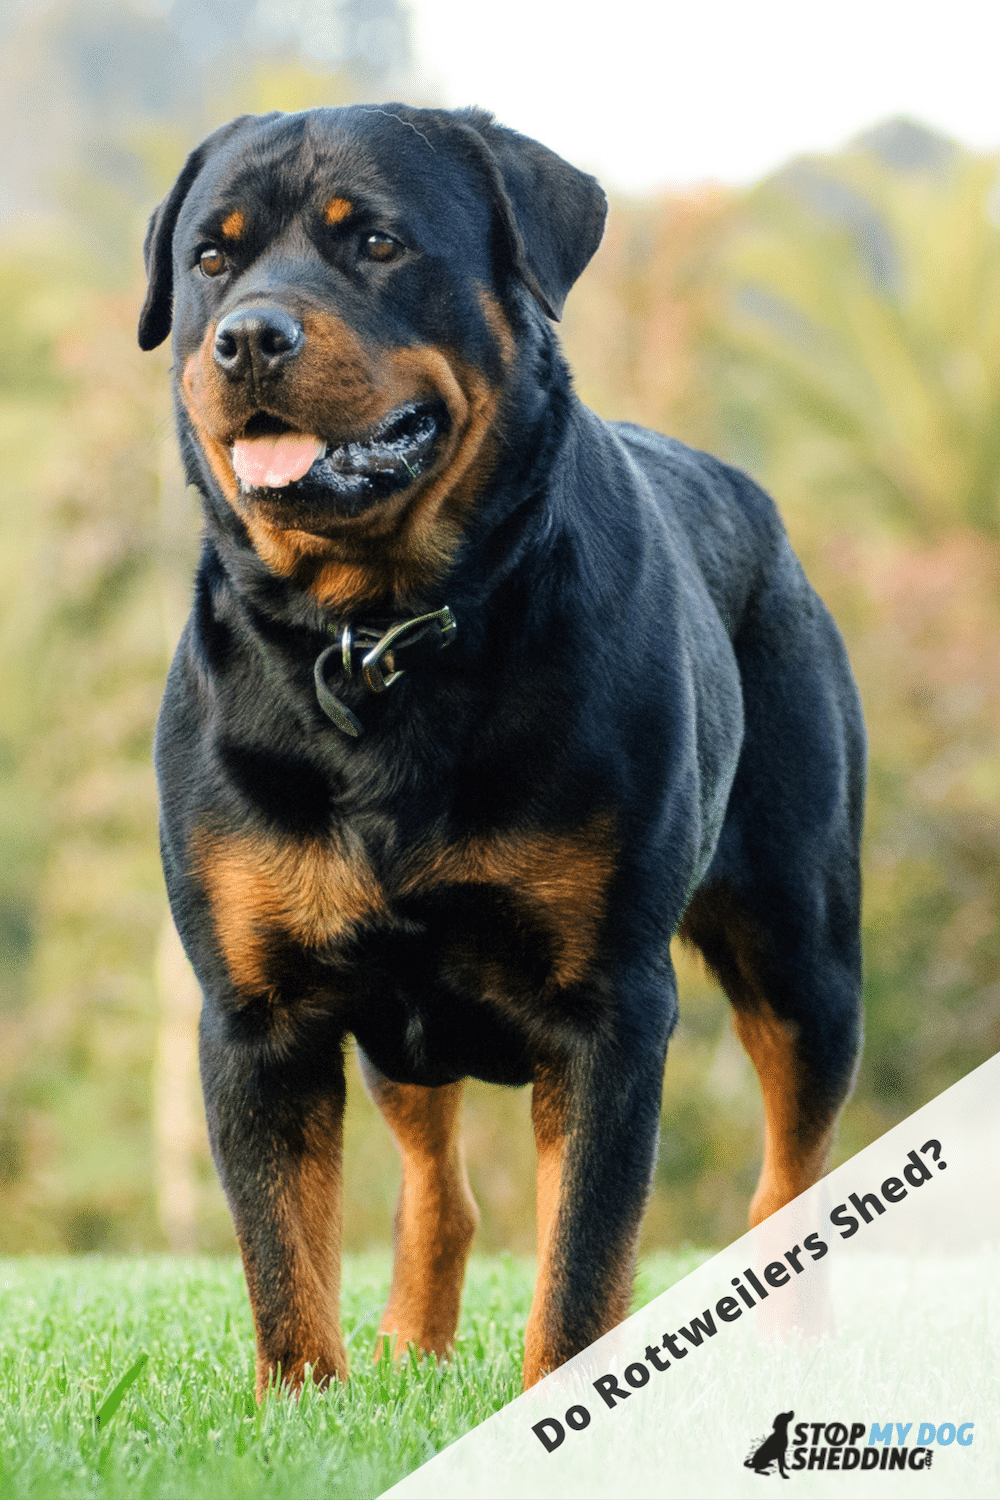 Do Rottweilers Shed? (Rottie Shedding Guide)